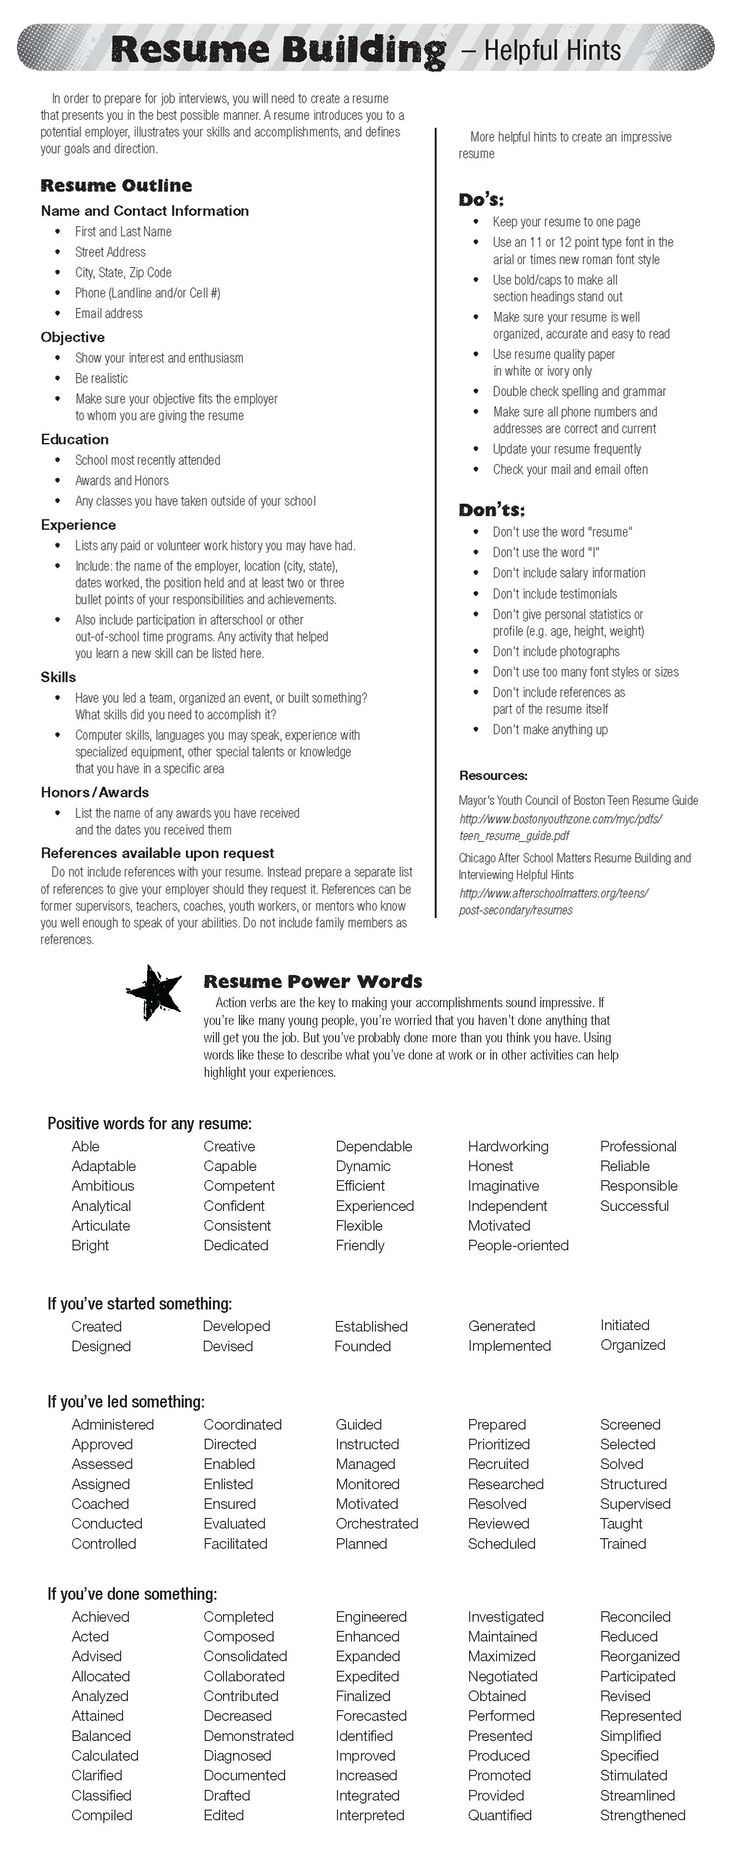 Opposenewapstandardsus  Wonderful  Ideas About Resume On Pinterest  Cv Format Resume Cv And  With Likable  Ideas About Resume On Pinterest  Cv Format Resume Cv And Resume Templates With Extraordinary Resume Online Builder Also Resume Services Nj In Addition How To Make Good Resume And How To Write A Resume For Your First Job As Well As Resume Services Cost Additionally Film Editor Resume From Pinterestcom With Opposenewapstandardsus  Likable  Ideas About Resume On Pinterest  Cv Format Resume Cv And  With Extraordinary  Ideas About Resume On Pinterest  Cv Format Resume Cv And Resume Templates And Wonderful Resume Online Builder Also Resume Services Nj In Addition How To Make Good Resume From Pinterestcom